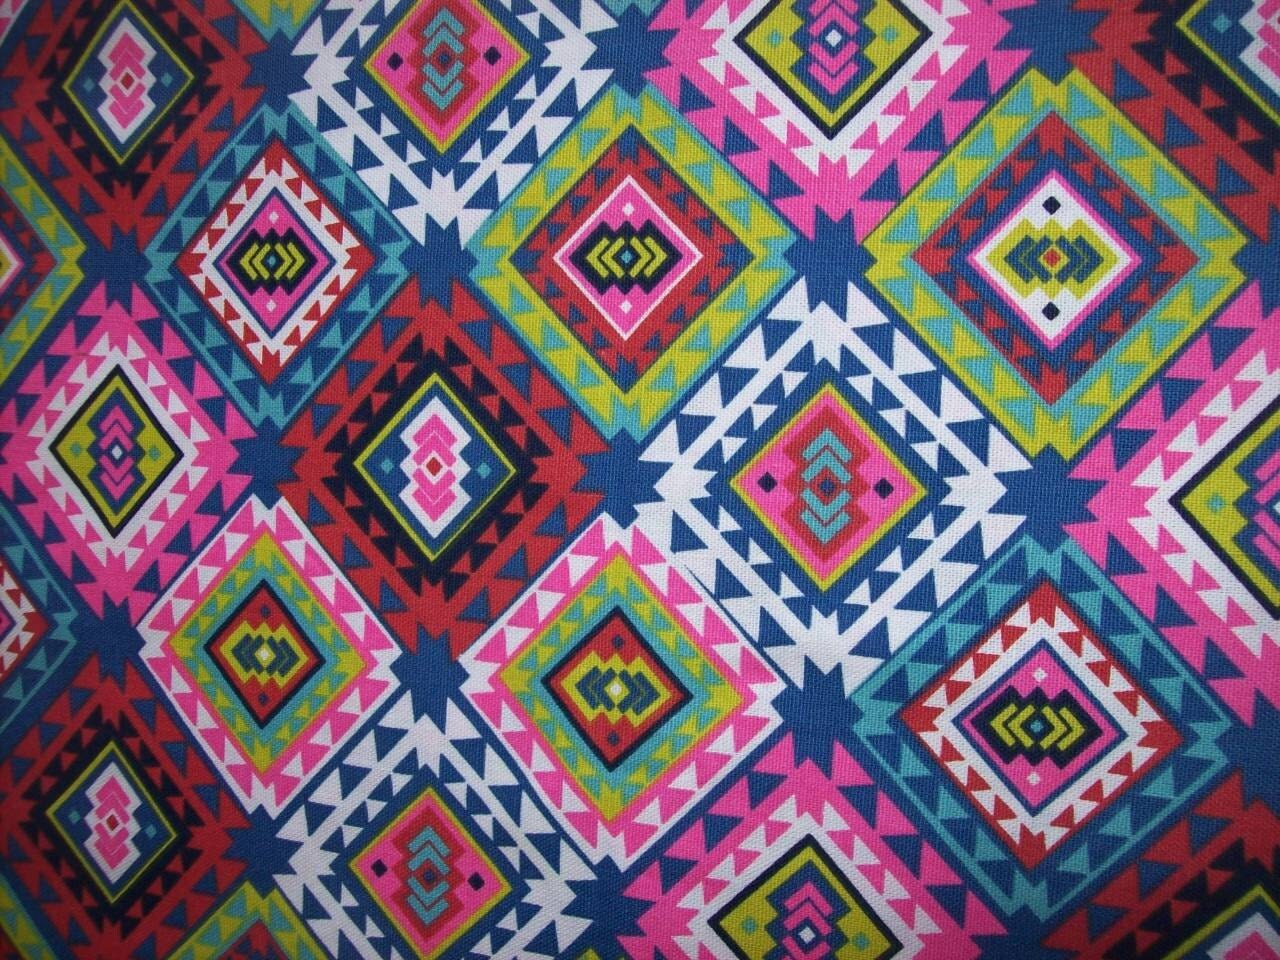 Per Yard Upholstery Lightweight Tribal Print Fabric For